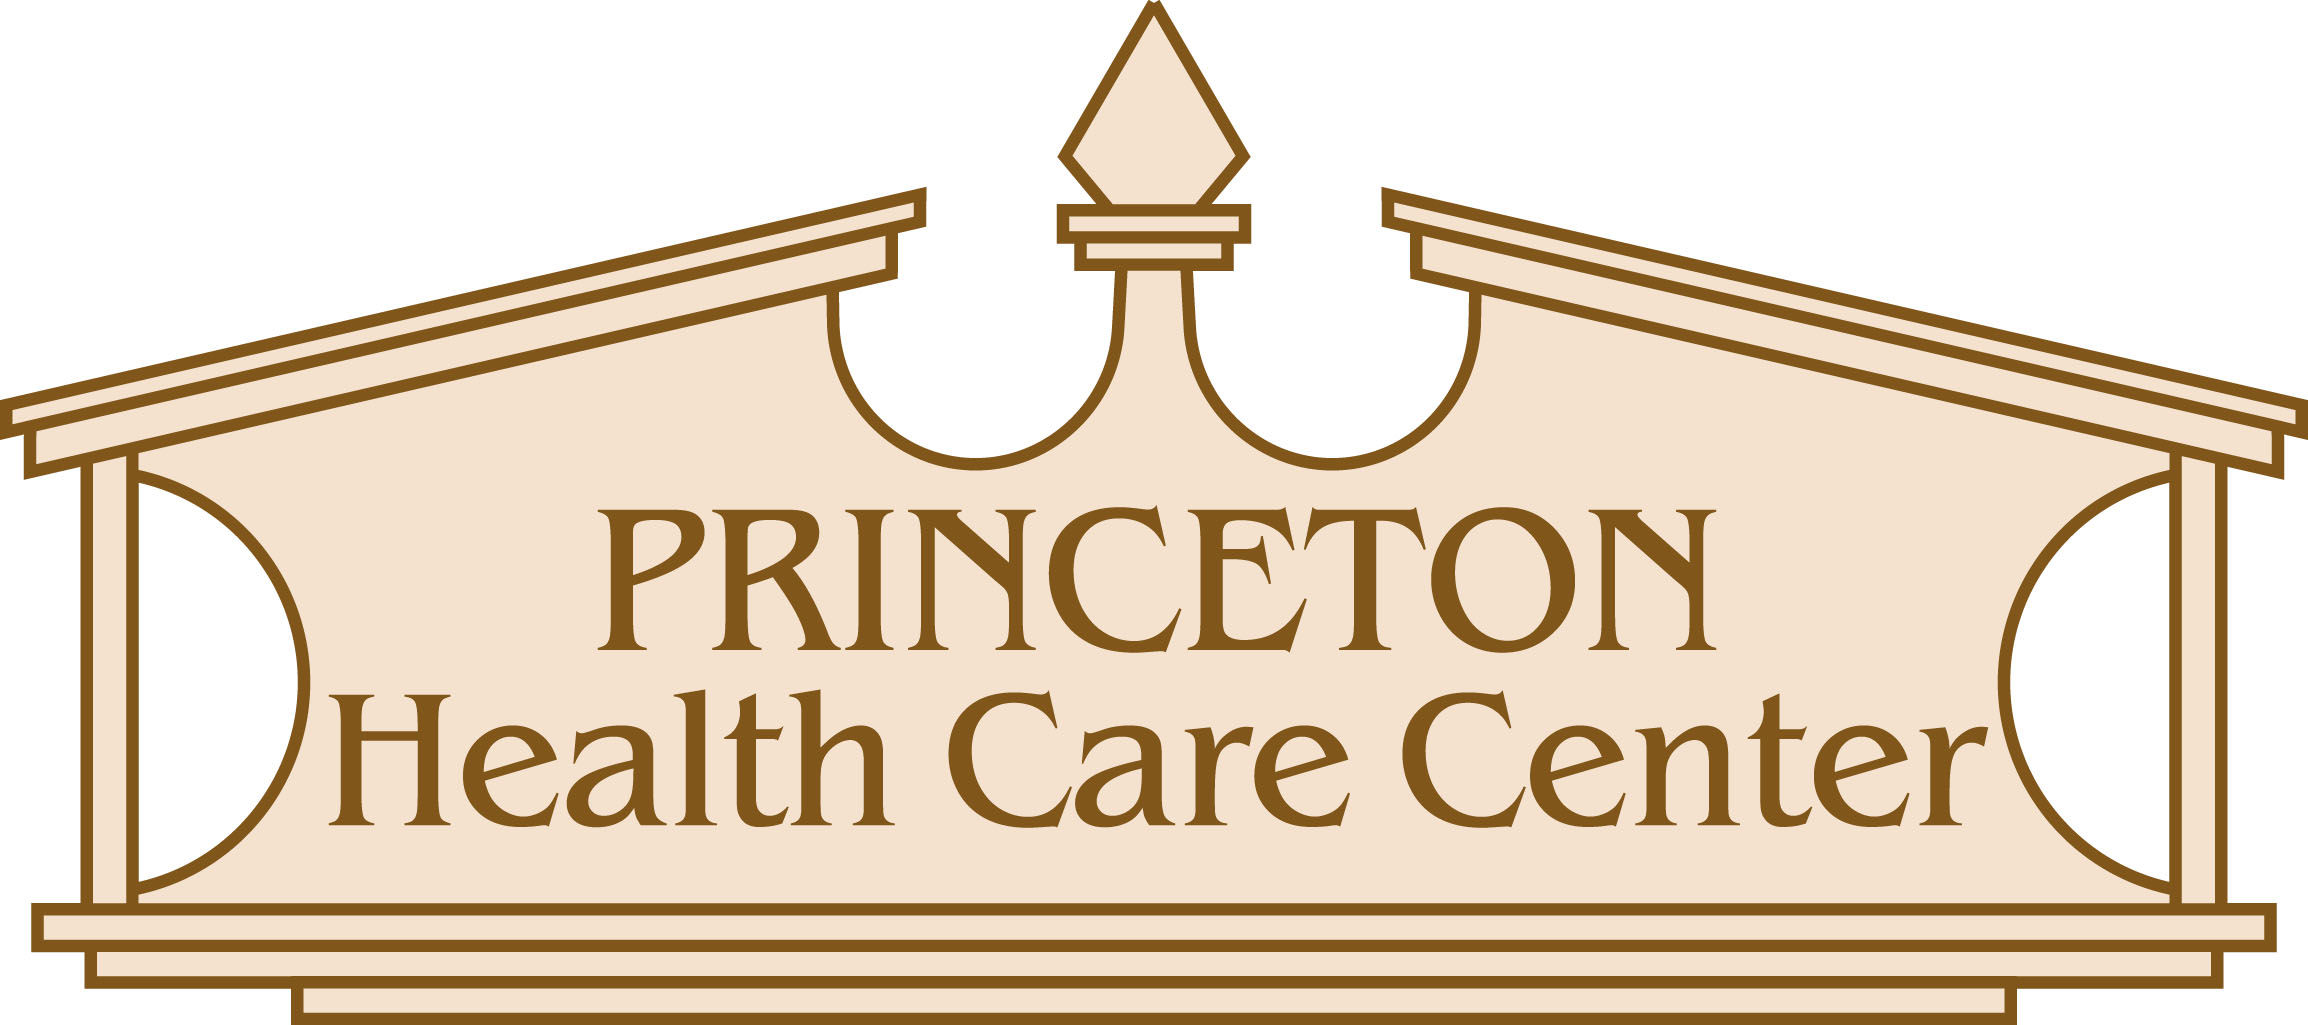 1 Princeton Healthcare (Gold)